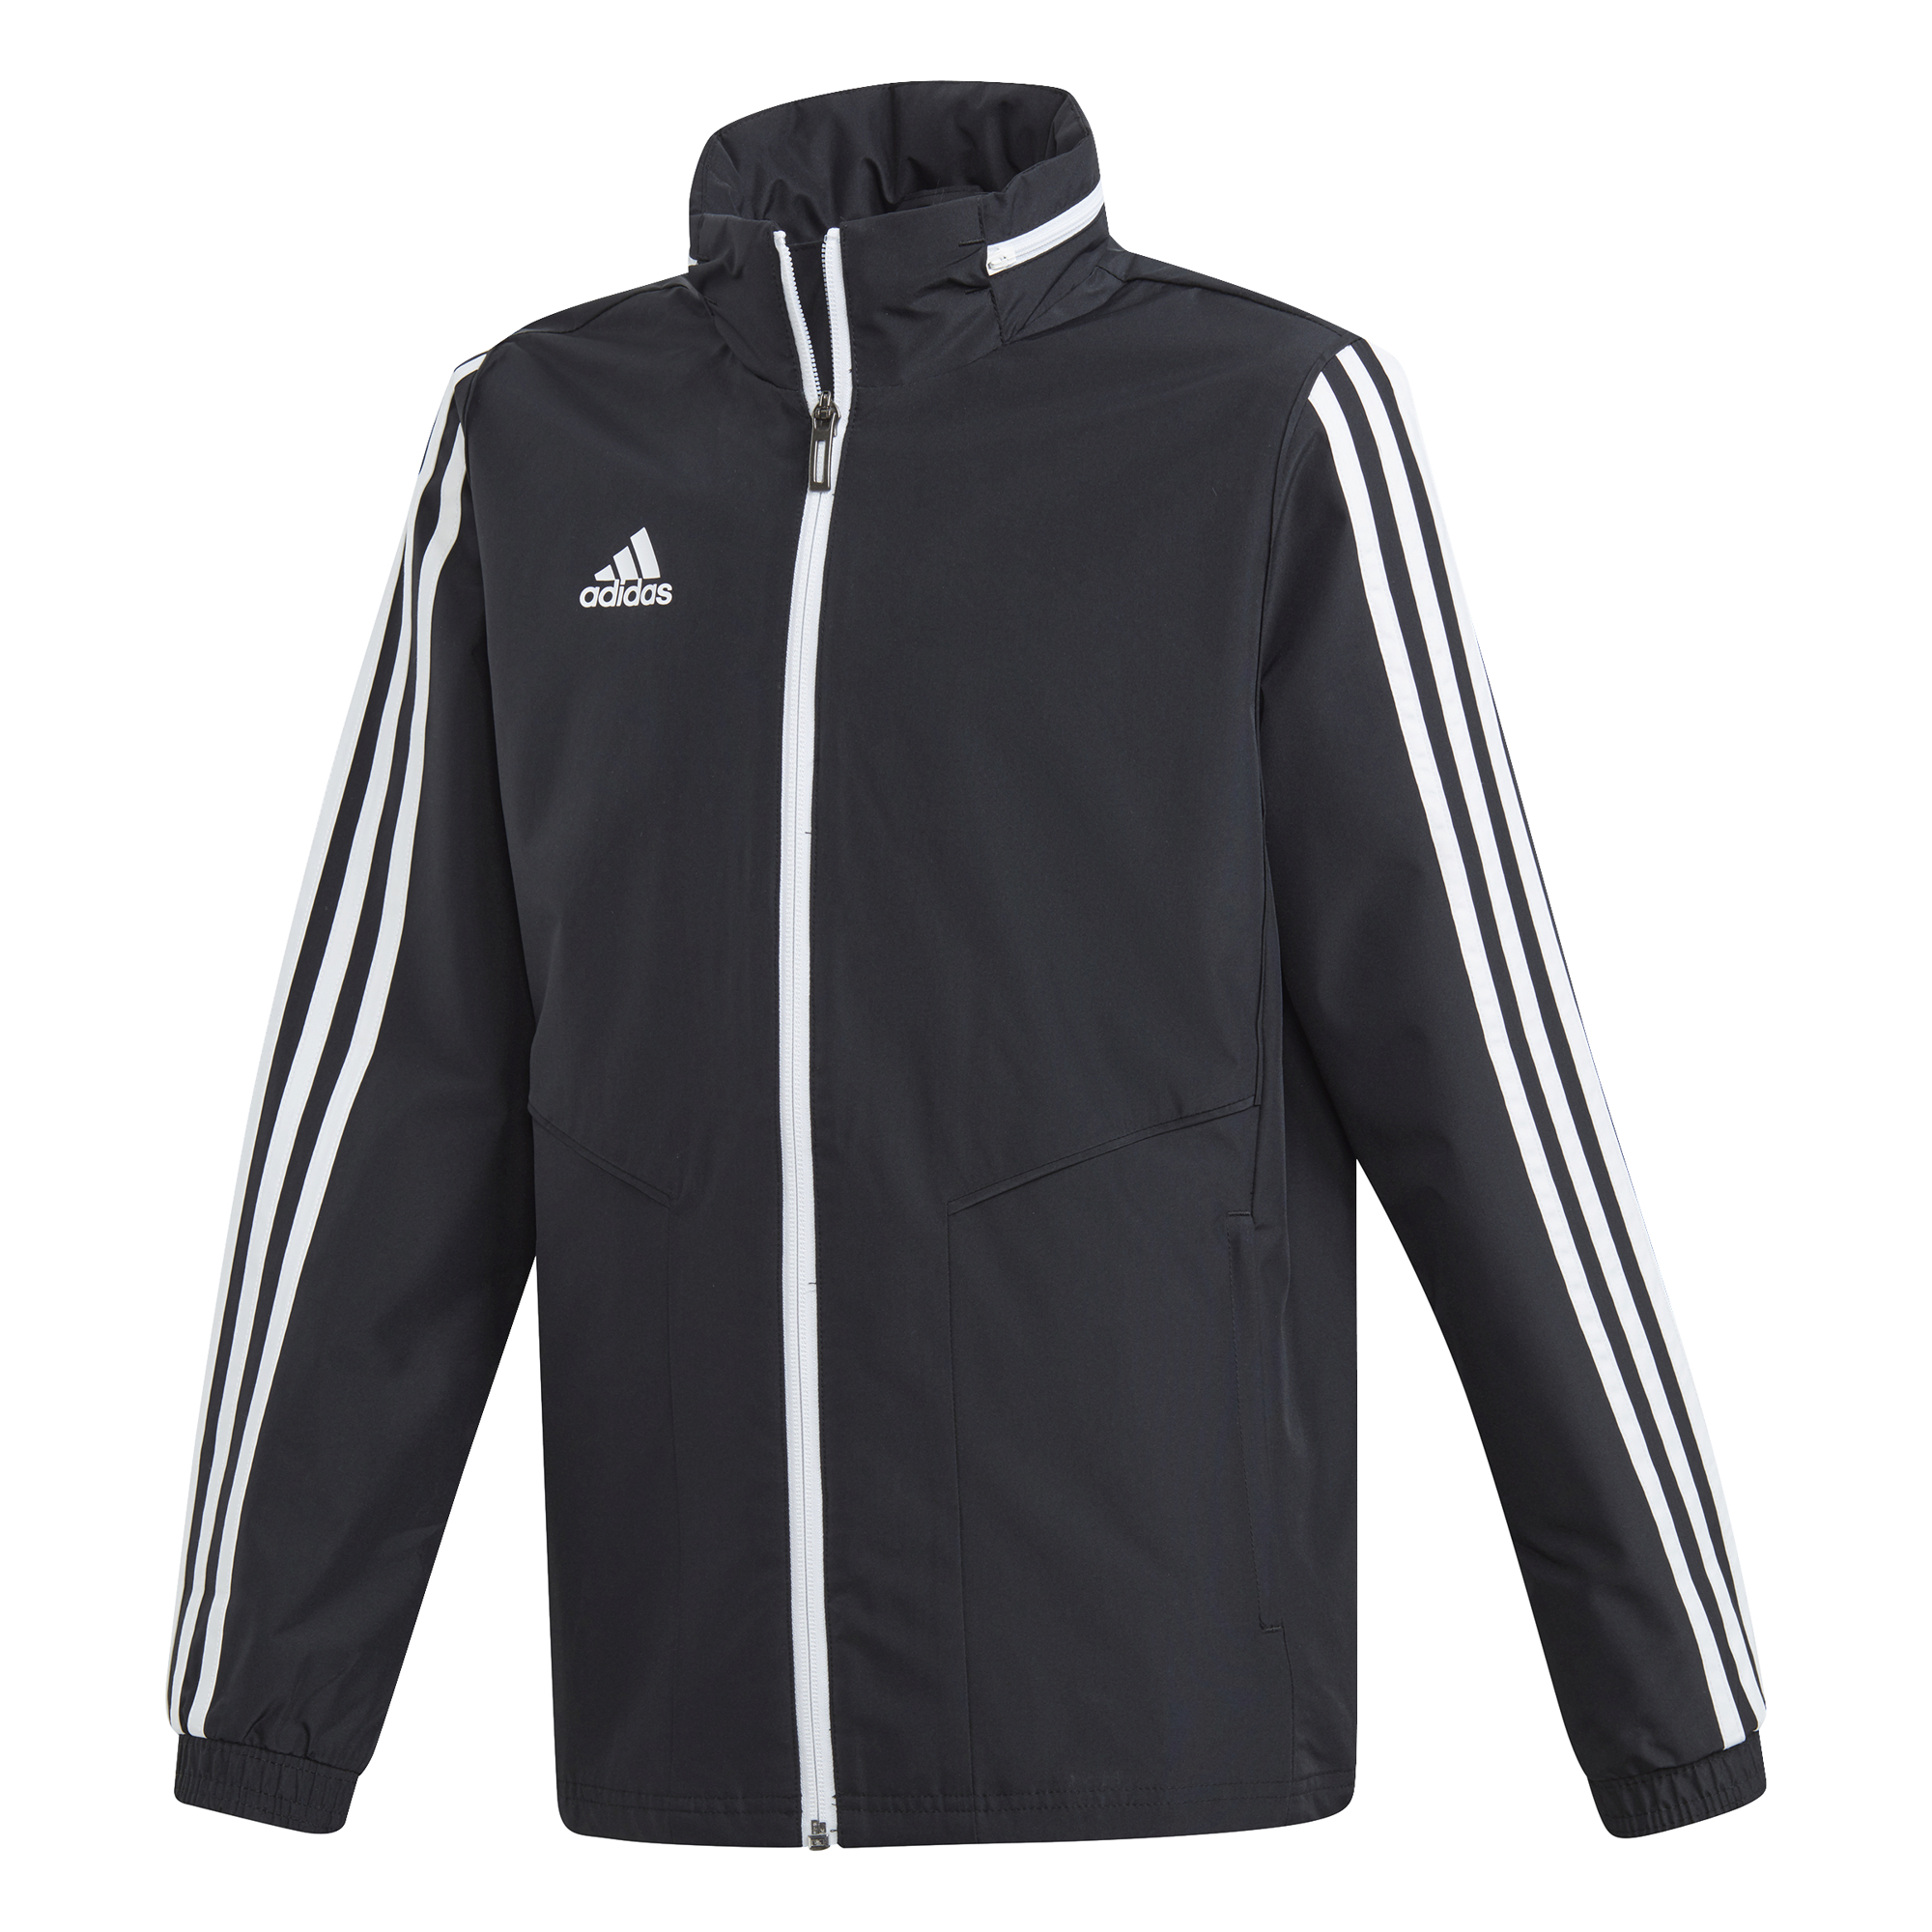 ADIDAS bunda Tiro 19 All Weather Jacket dětská